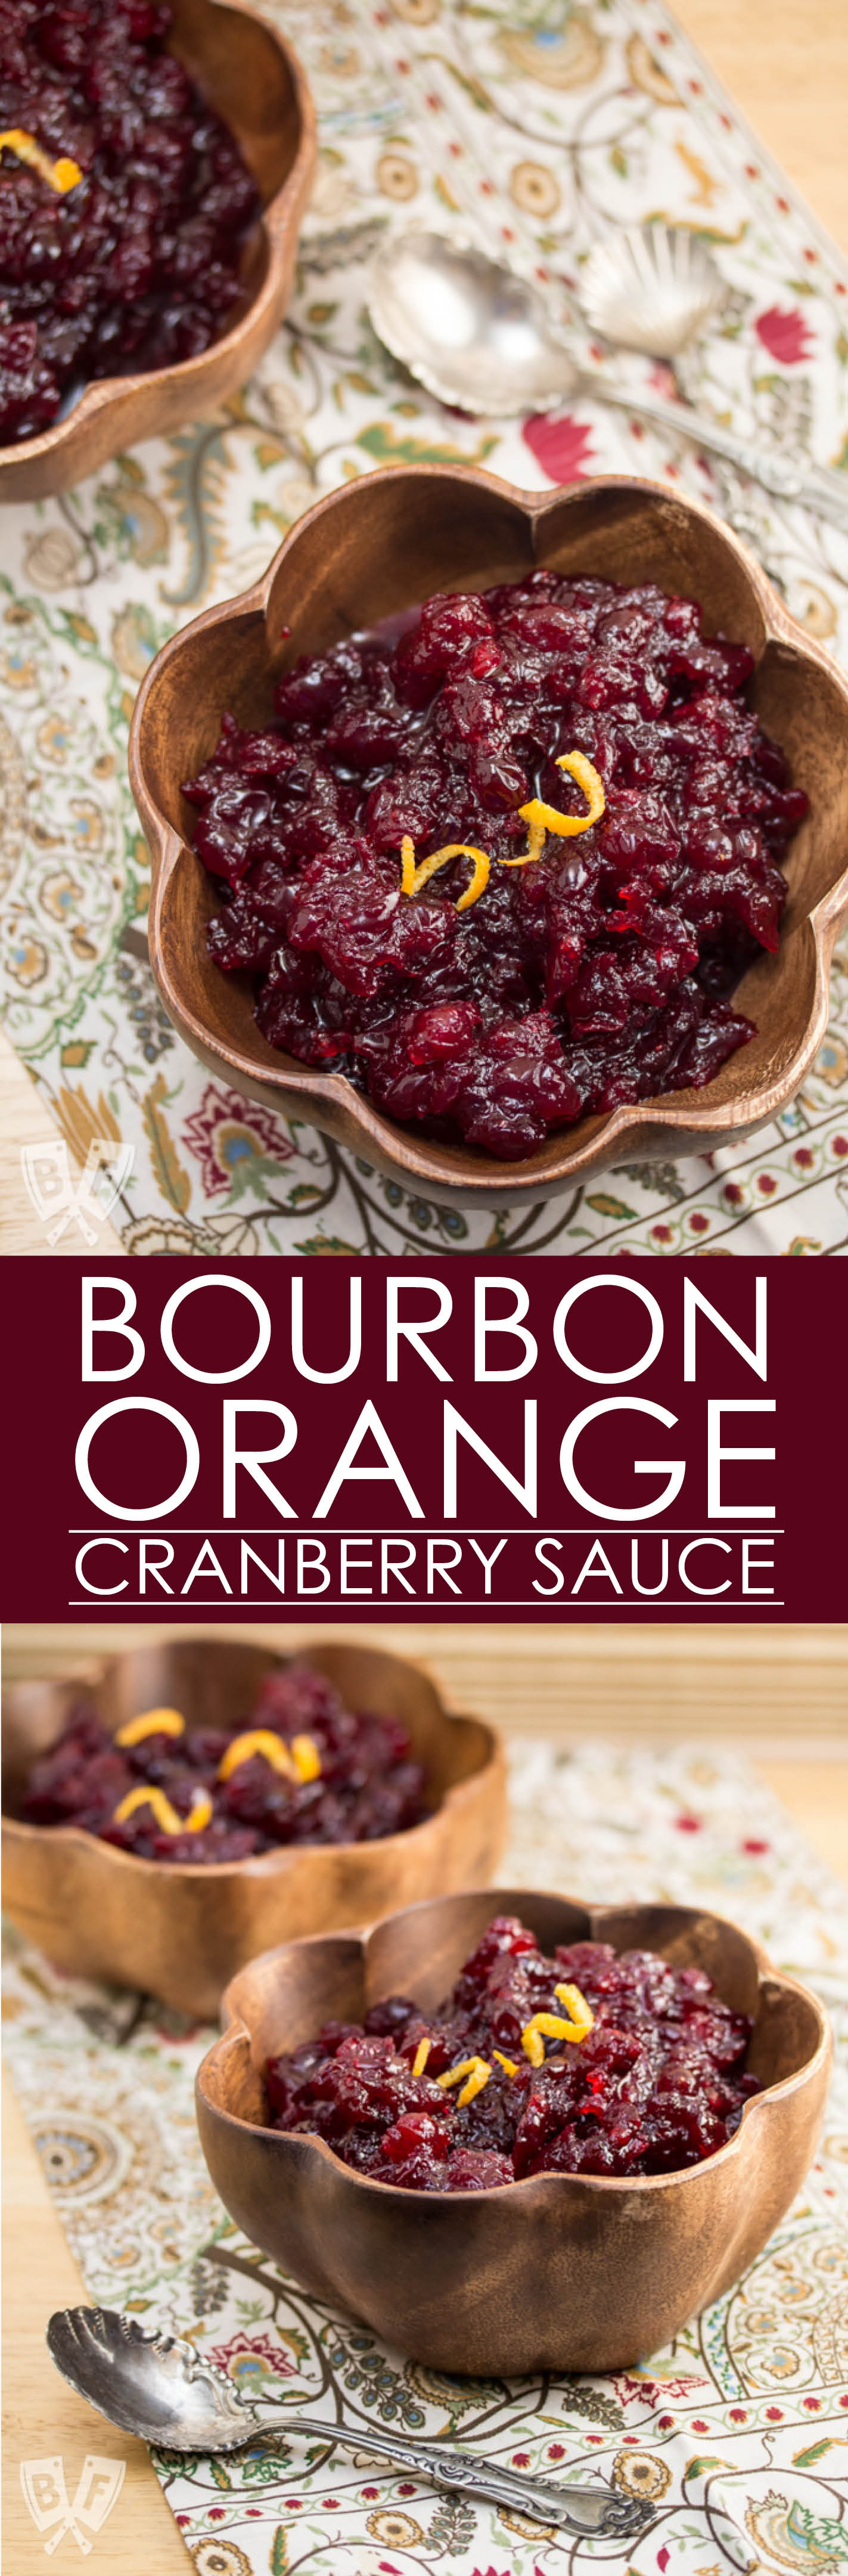 This Bourbon-Orange Cranberry Sauce is a boozy side dish that can be prepared several days in advance and is the perfect accompaniment to any holiday meal! It's always on my Thanksgiving menu!